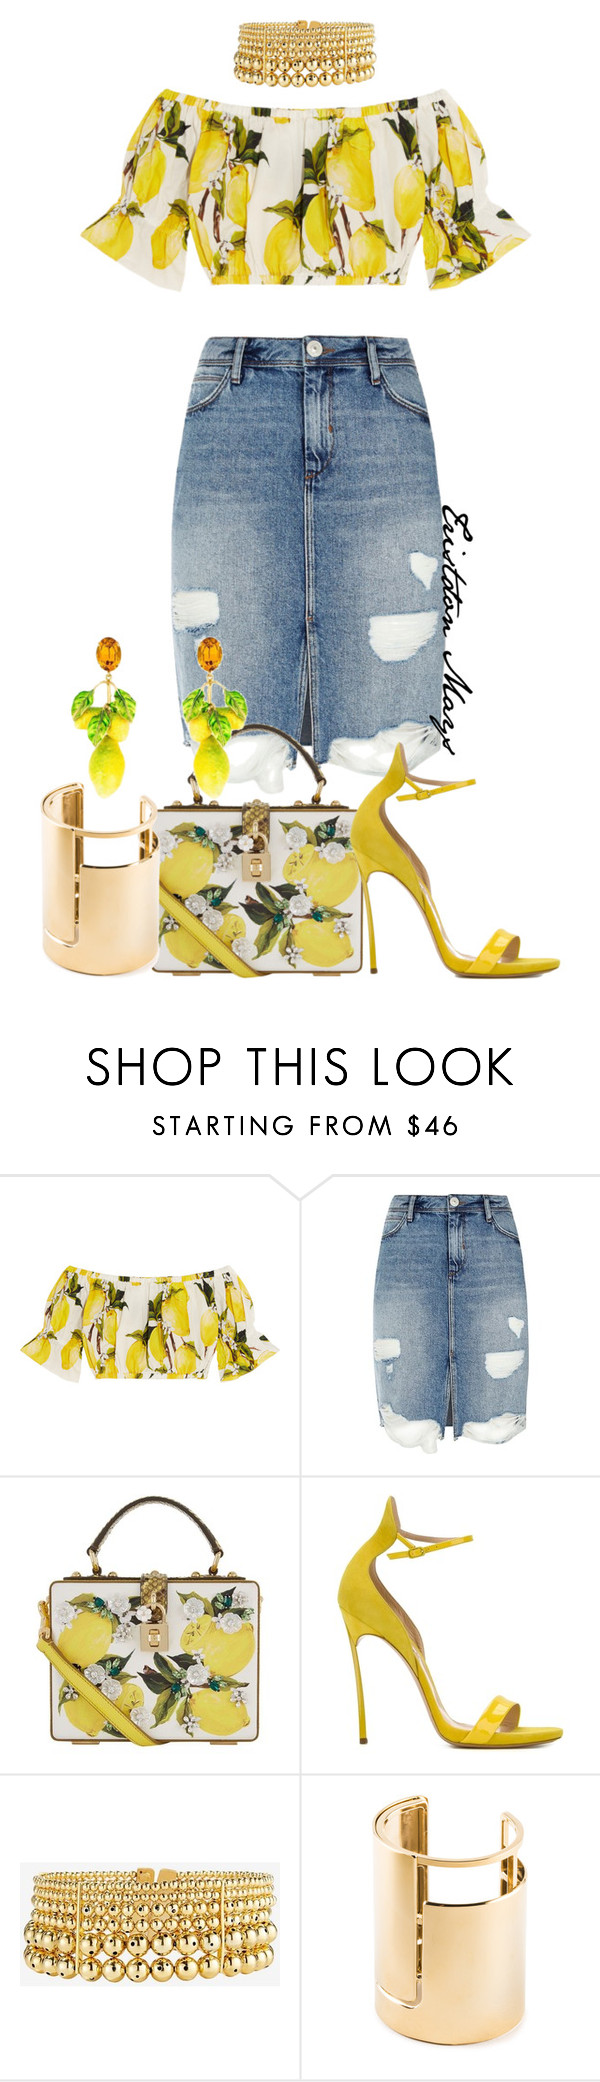 """Lemonade Is Popular Drink."" by monroestyles ❤ liked on Polyvore featuring Dolce&Gabbana, River Island, Casadei, Paula Mendoza, Lanvin, Beyonce and lemonade"